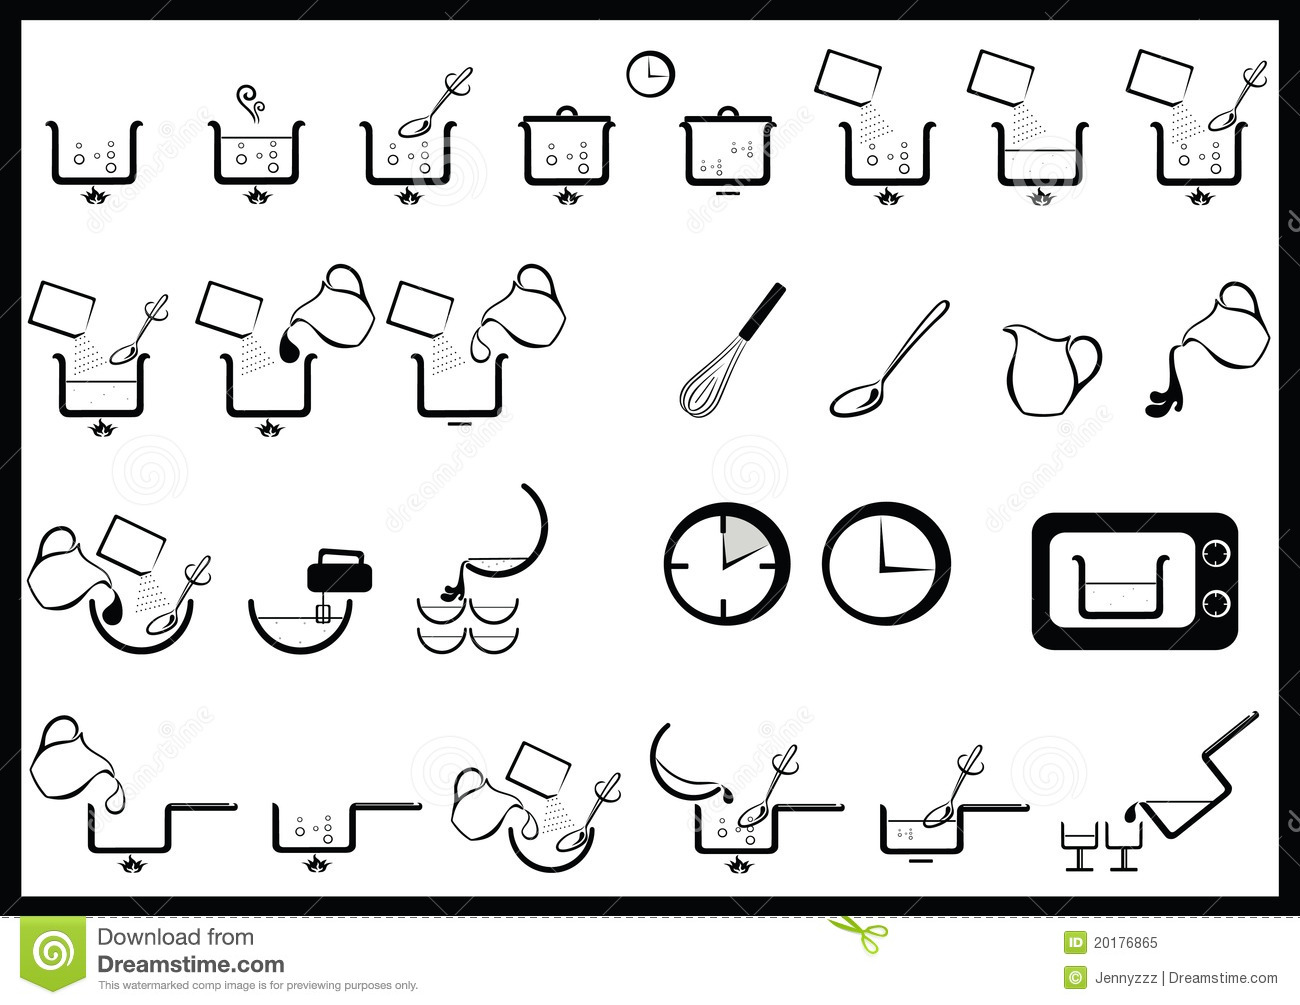 Cooking instructions stock vector. Image of casserole